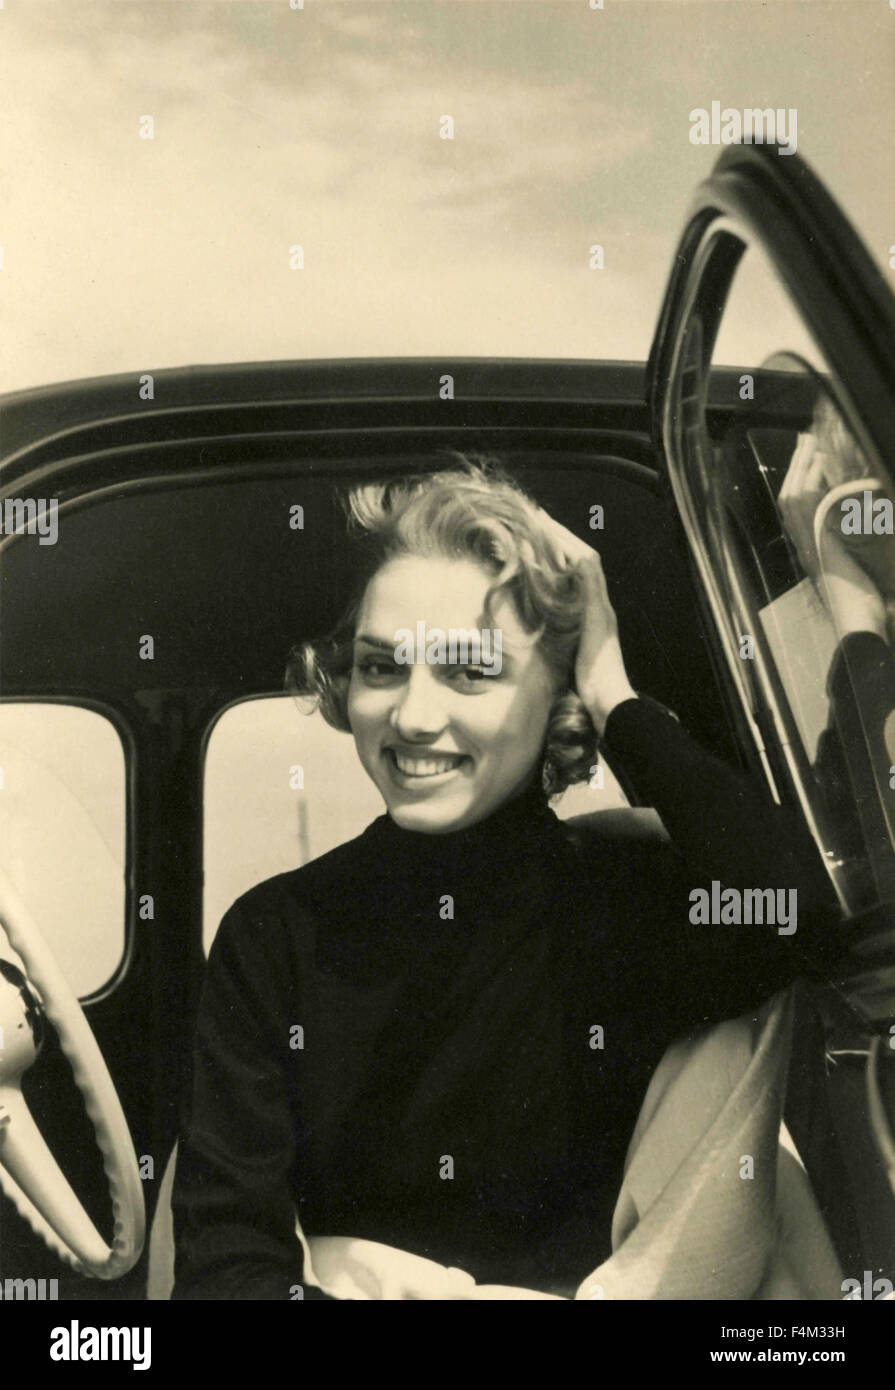 Girl smiles from inside a car, Italy - Stock Image